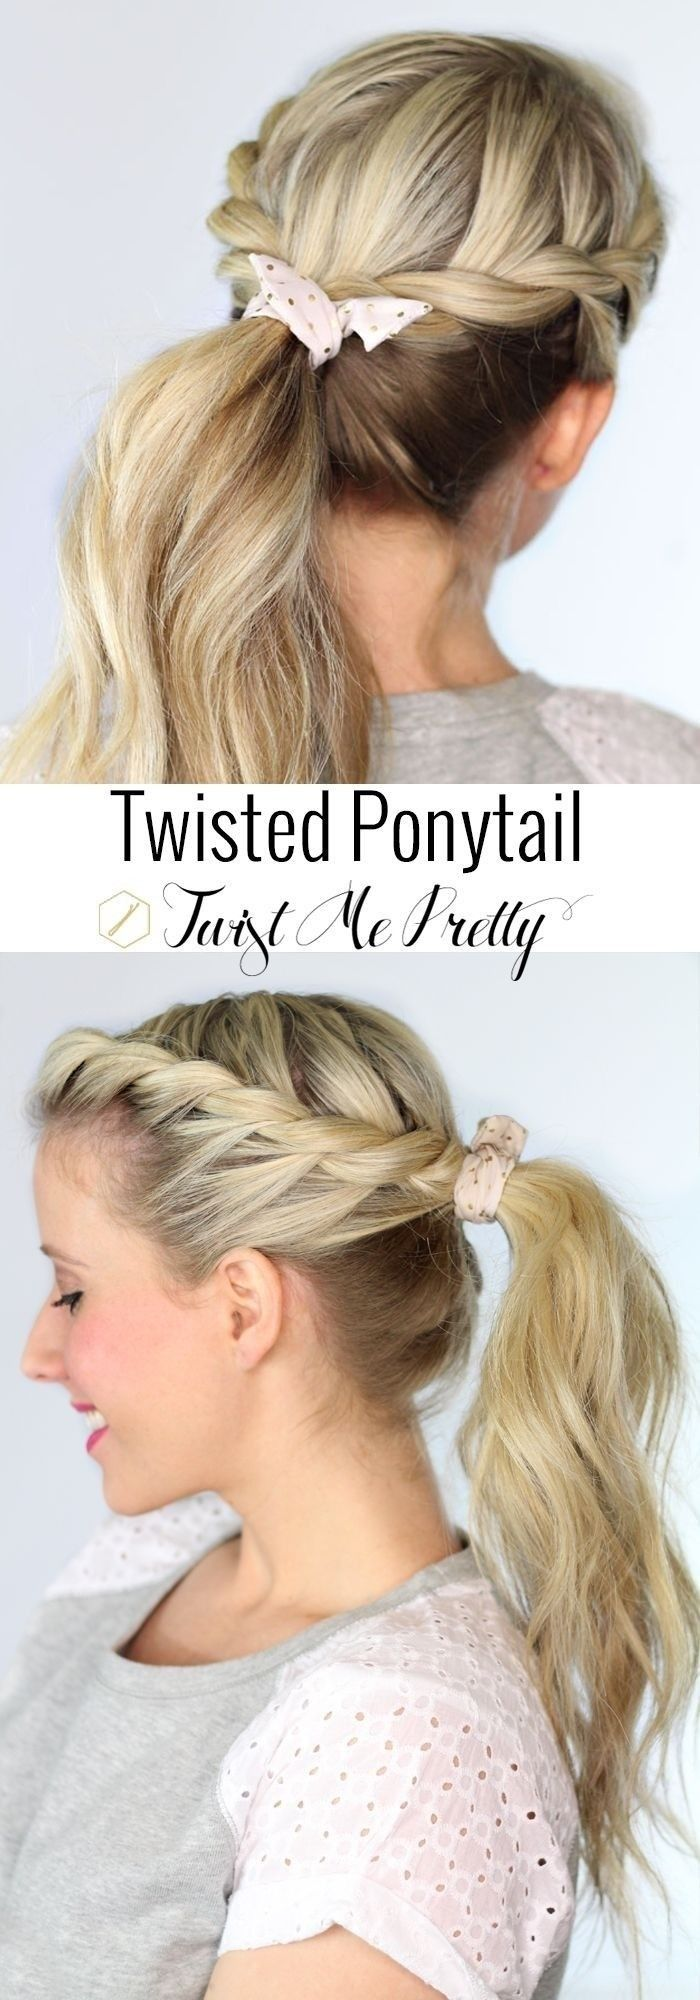 ponytail hairstyles discover latest ponytail ideas now easy